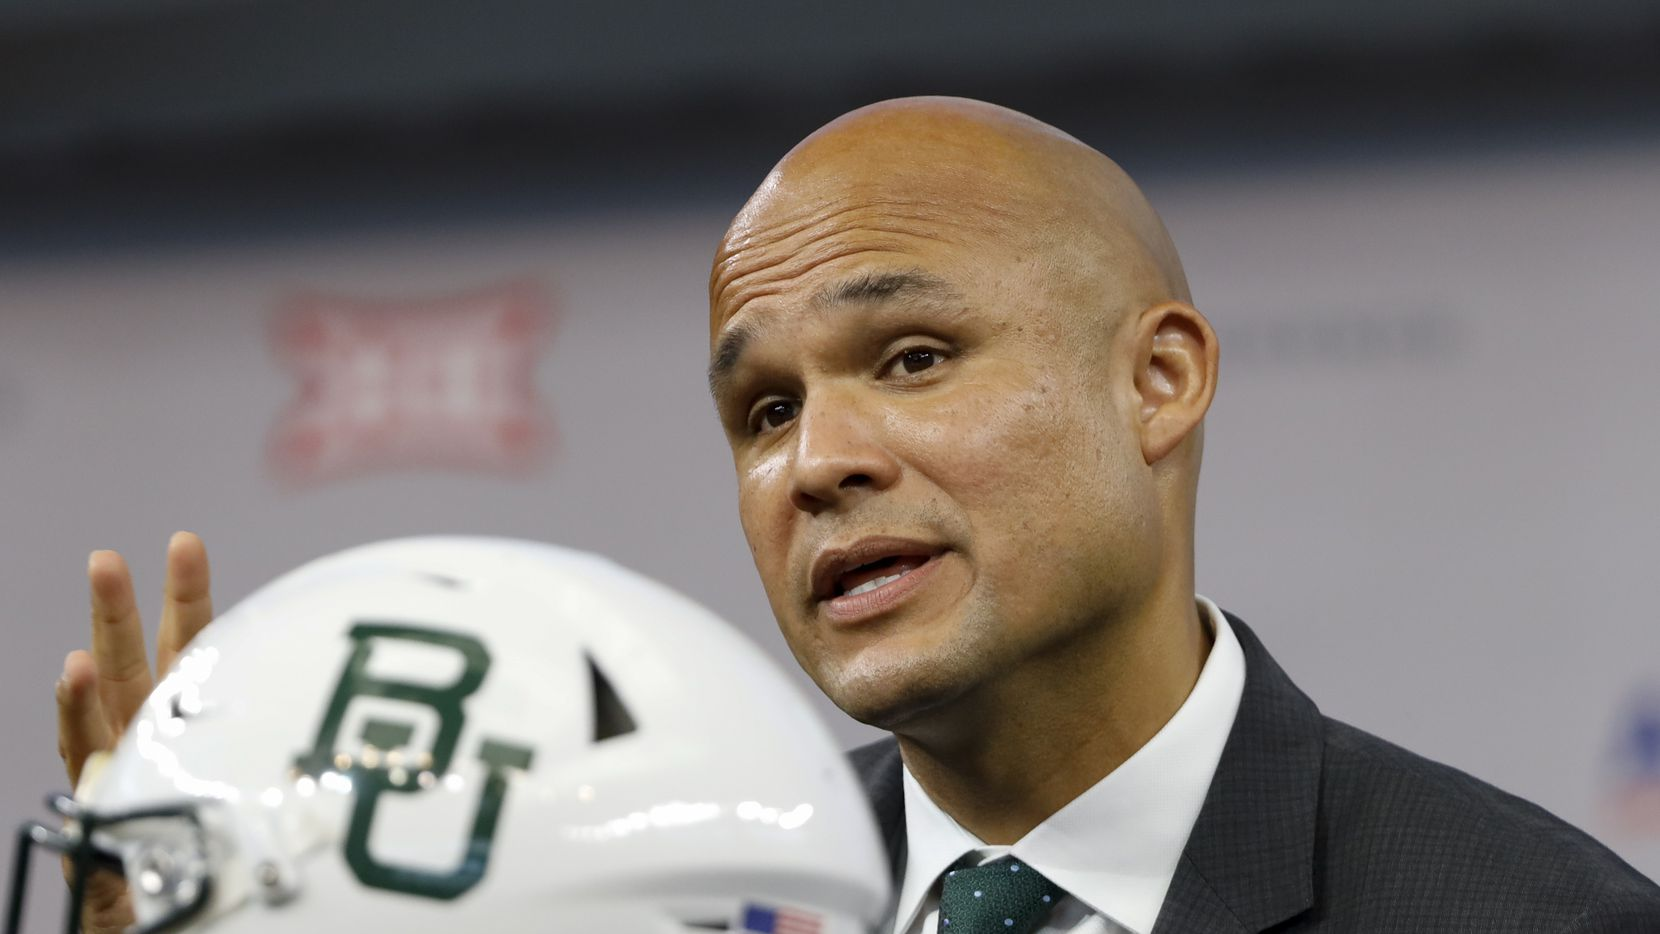 Baylor head football coach Dave Aranda speaks during the Big 12 Conference Media Days at AT&T Stadium on Thursday, July 15, 2021, in Arlington.